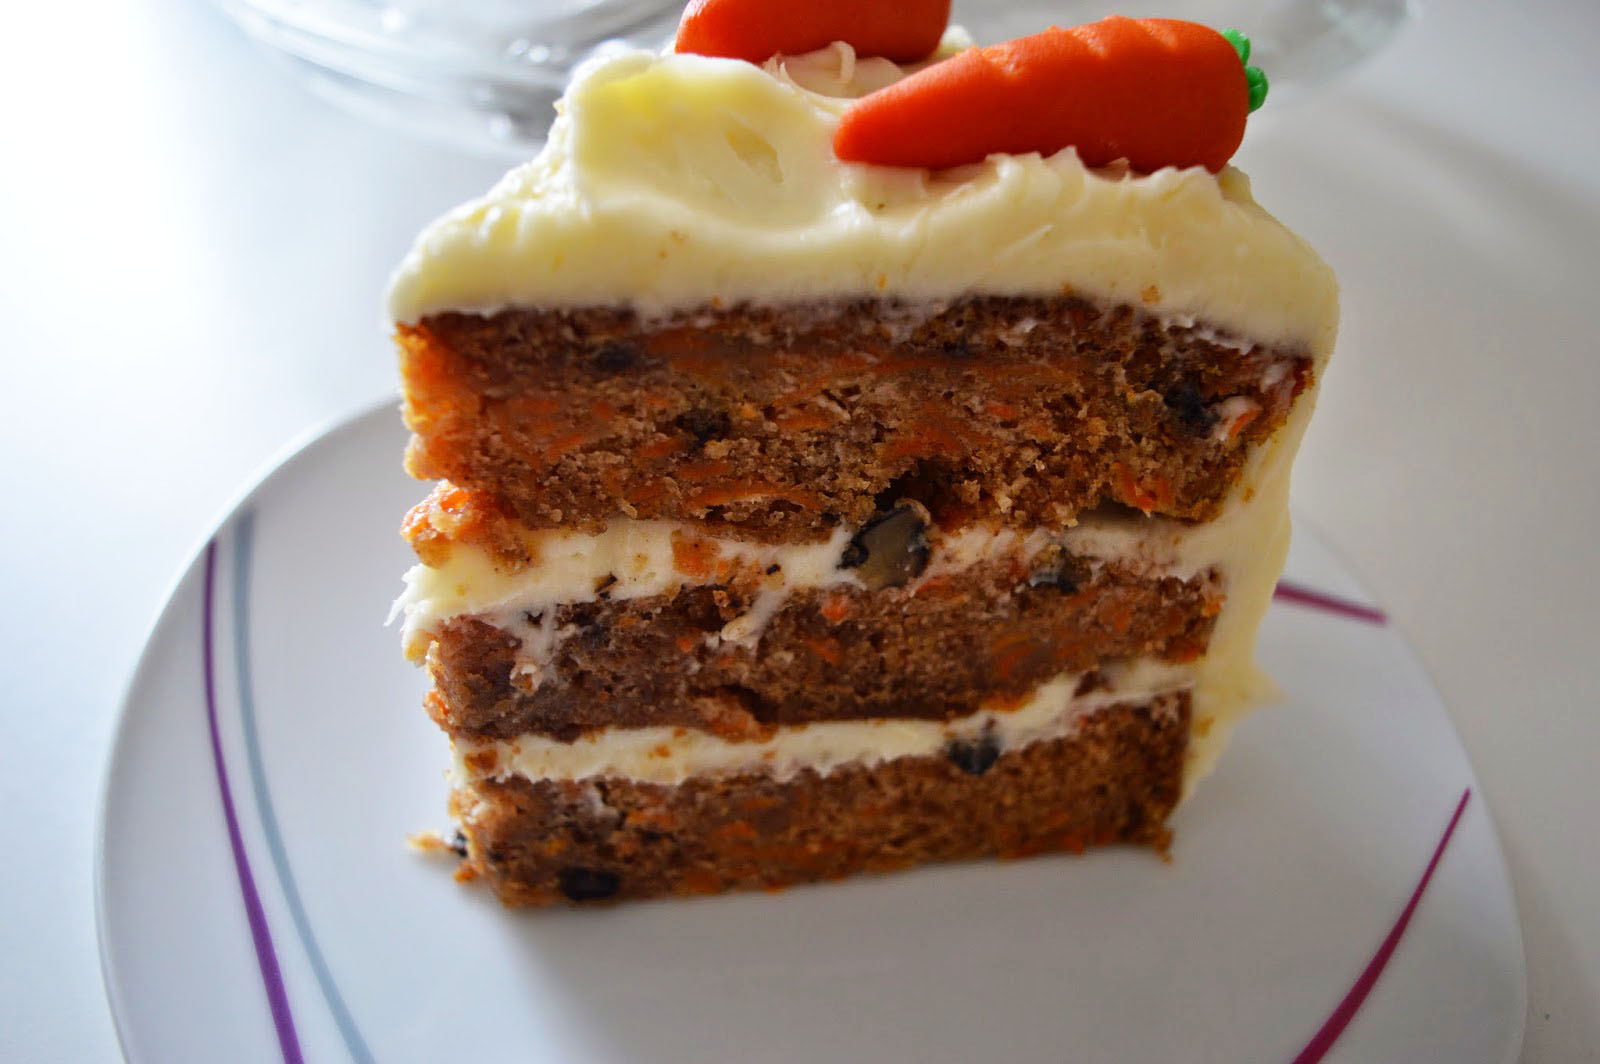 Translate Carrot Cake With A Cream Cheese Frosting